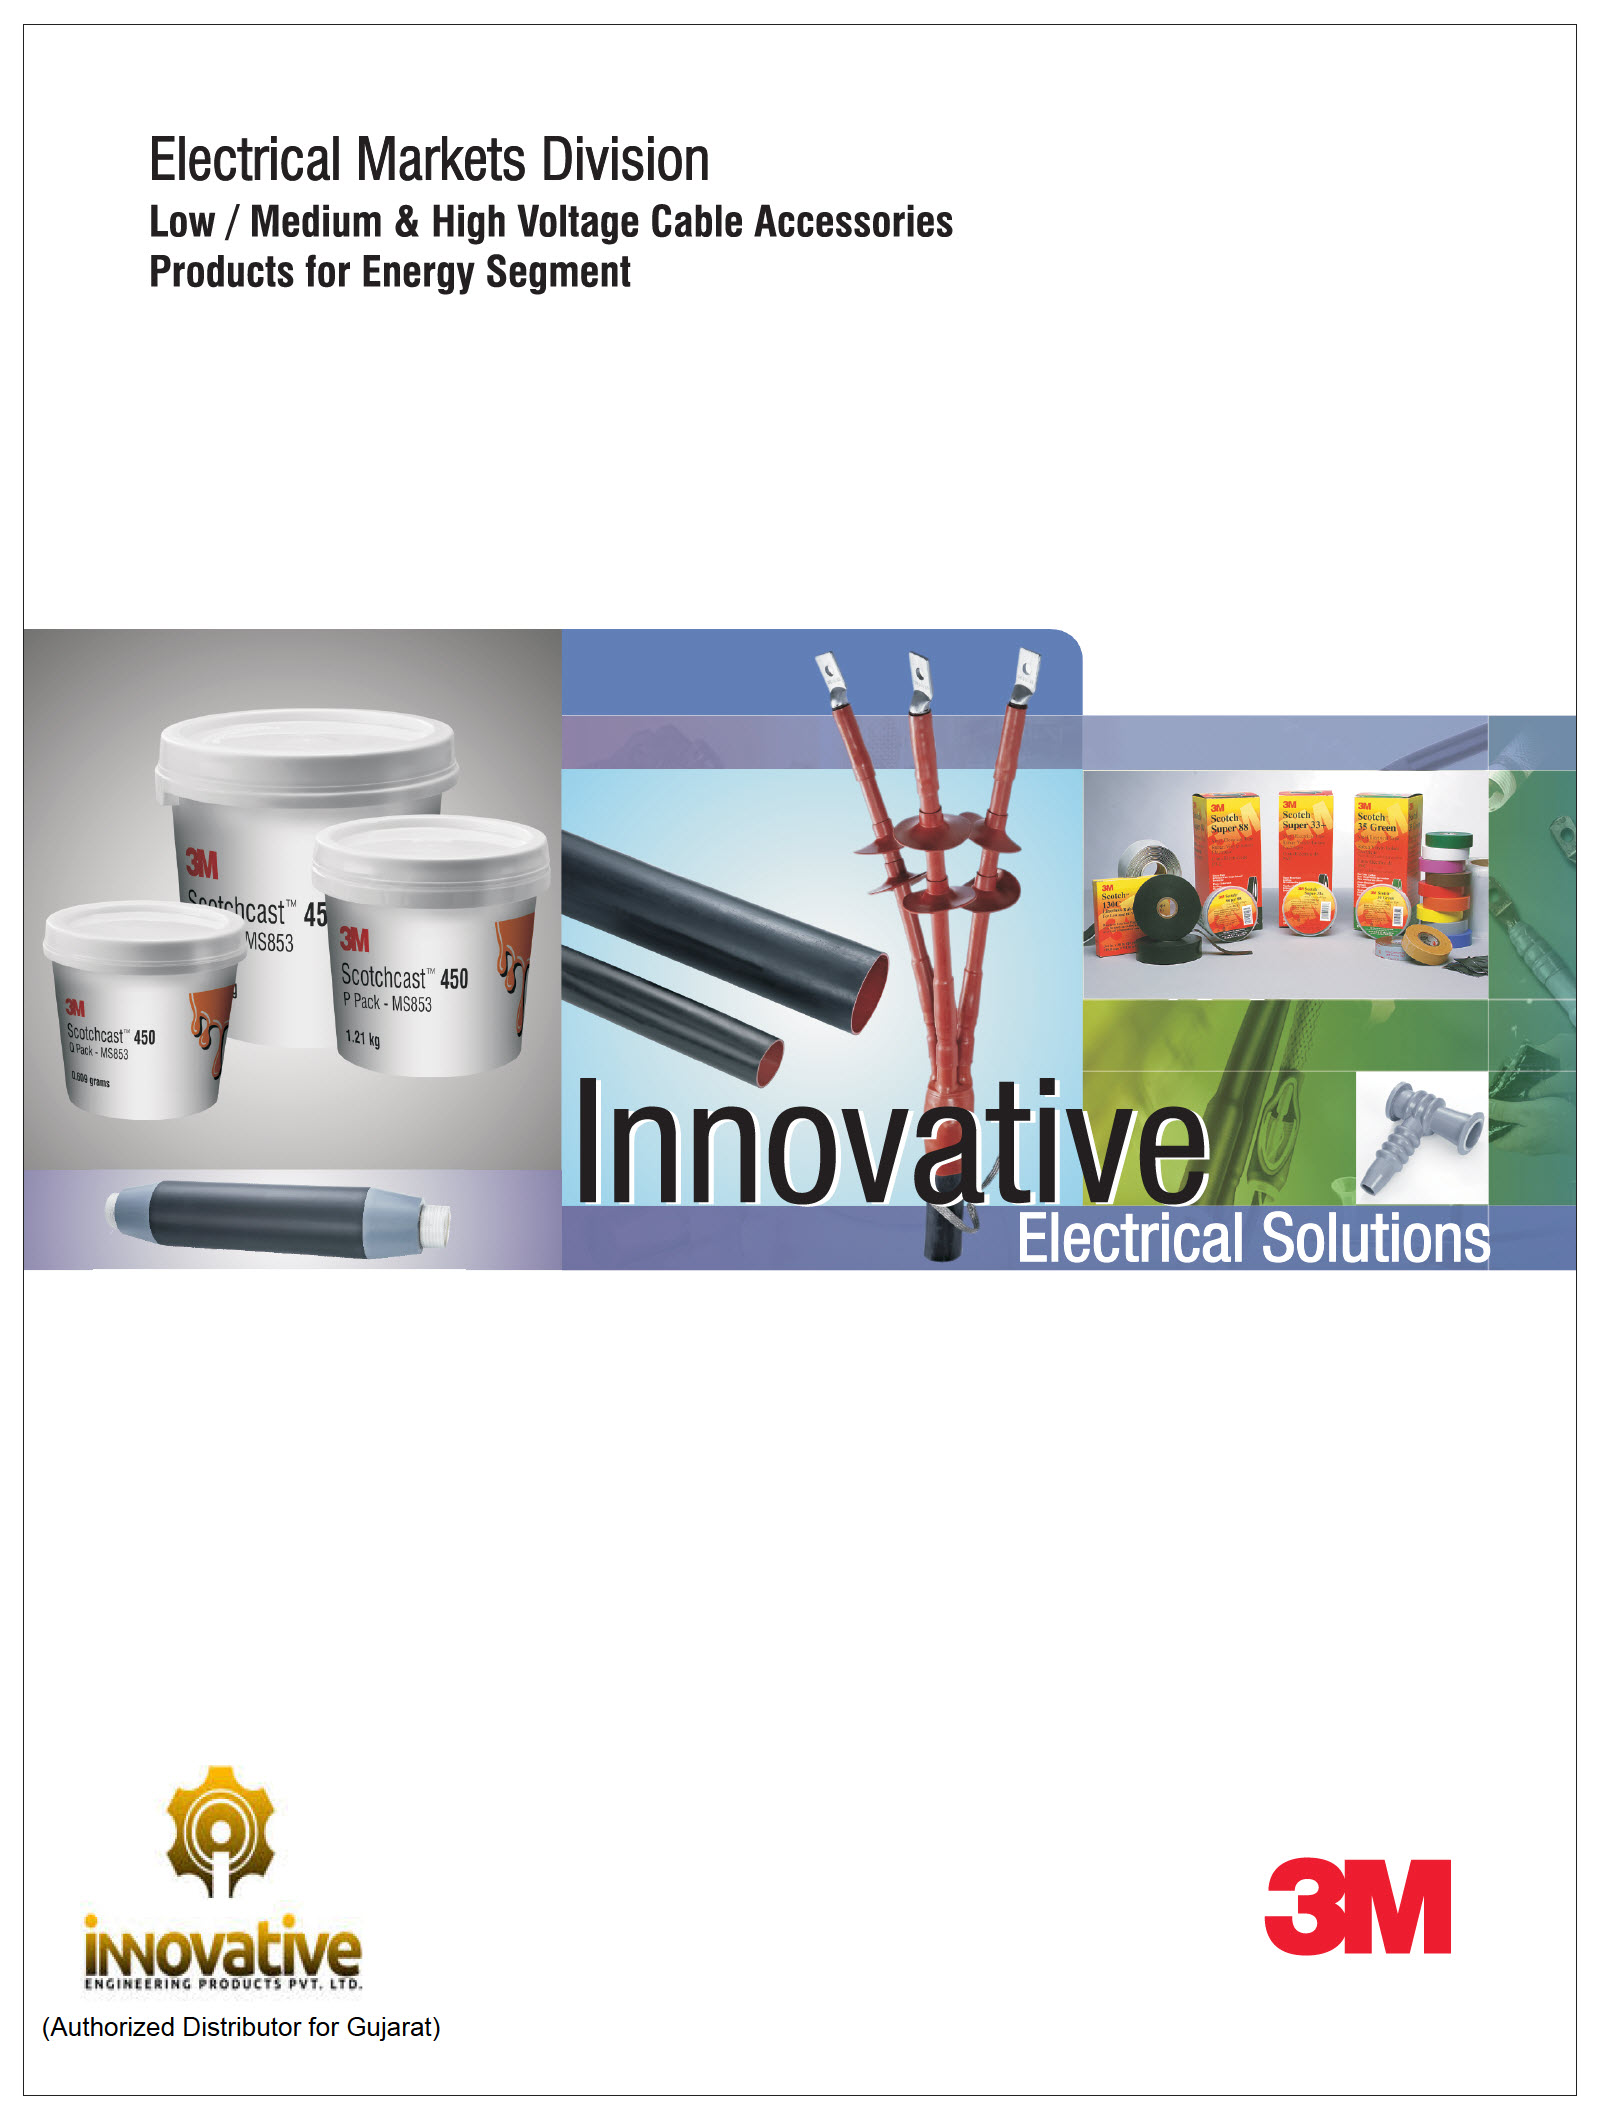 LMH Voltage Cable Accessories